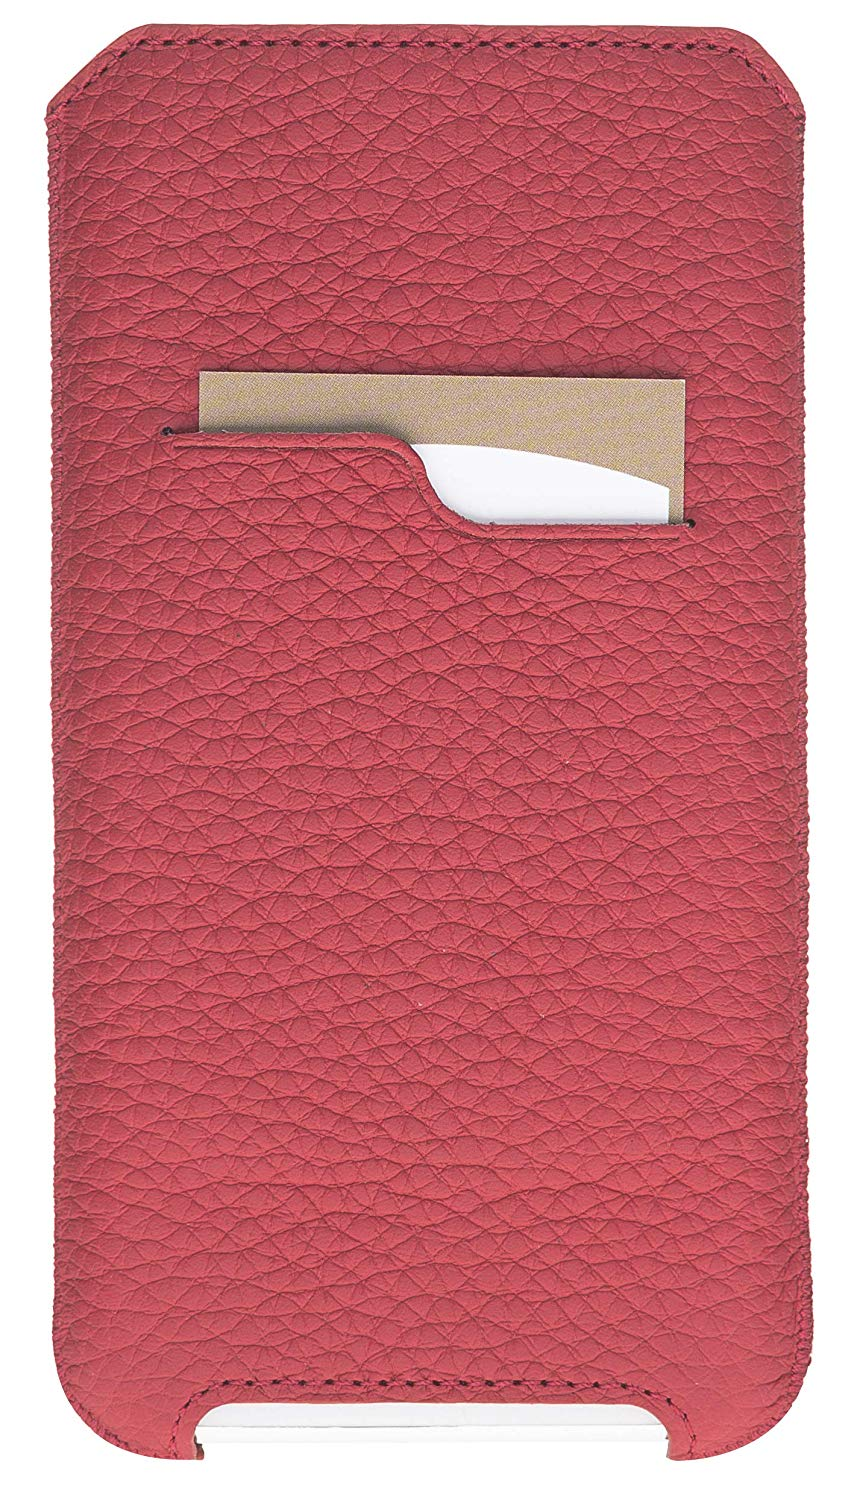 iPhone 11 & XR Hülle I Lederhülle I Ledertasche I Sleeve aus echtem Leder in Floater Rot